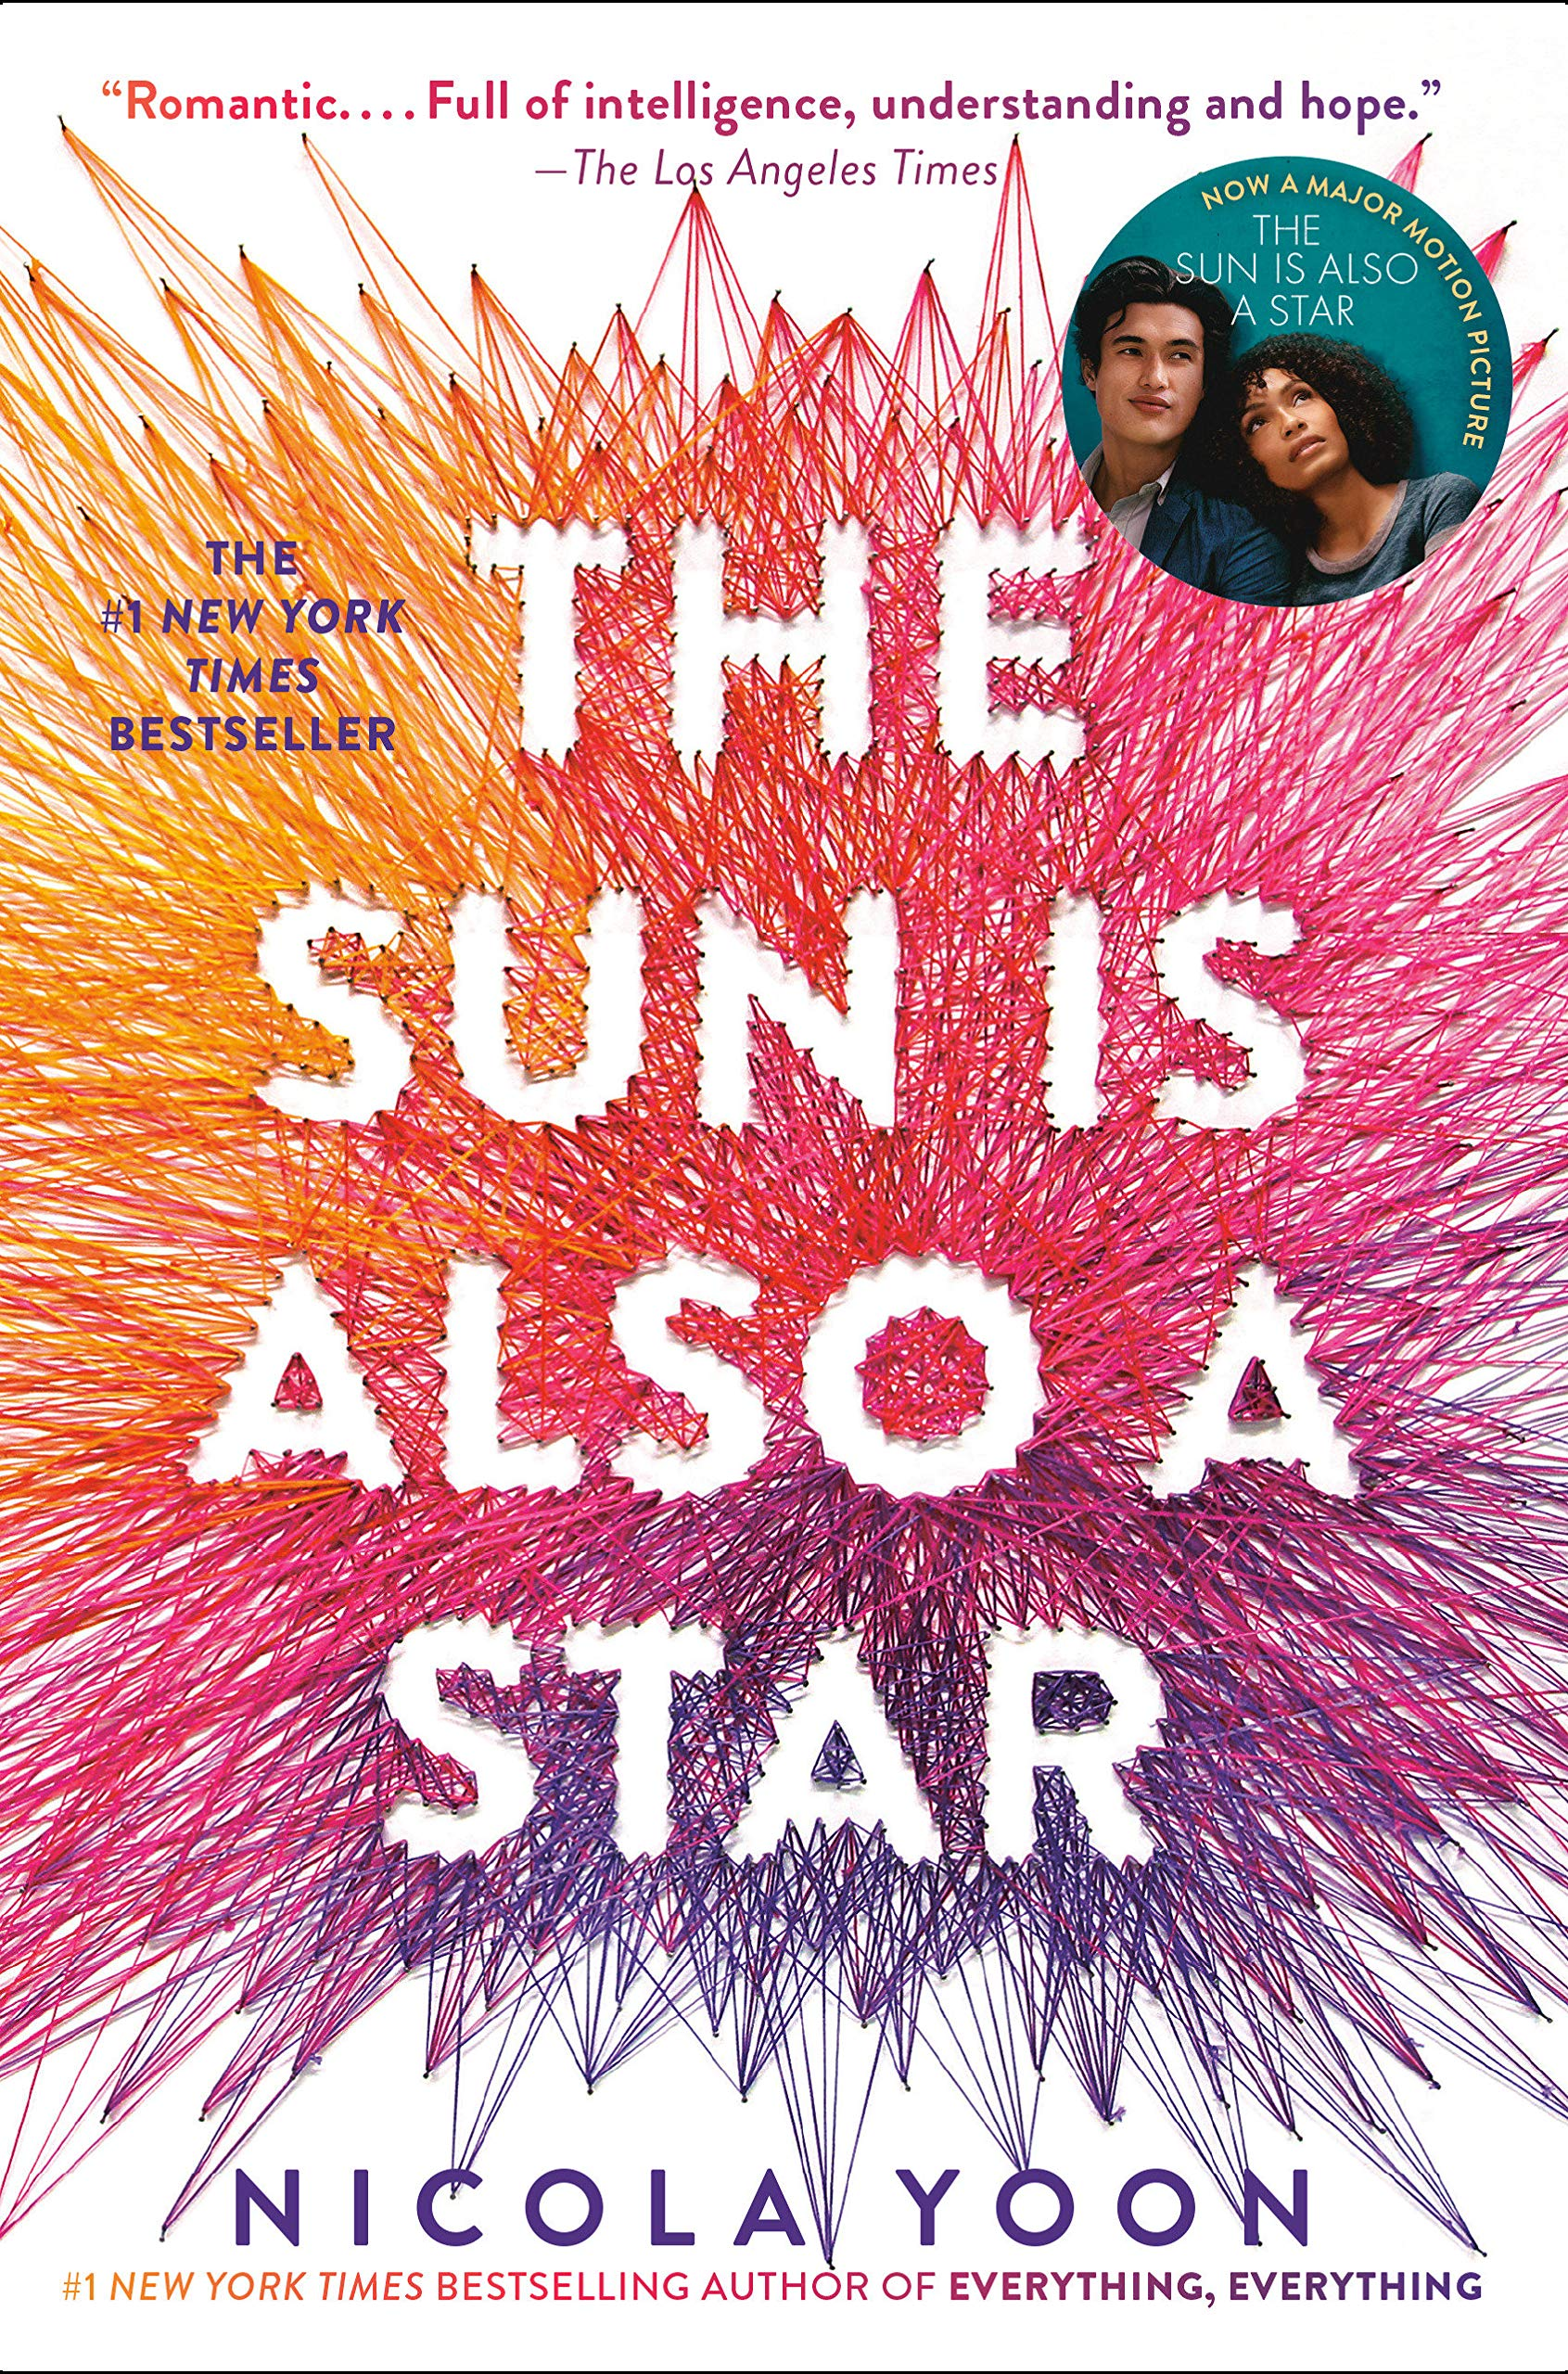 The Sun Is Also a Star (Yoon, Nicola): Amazon.co.uk: Yoon, Nicola: Books